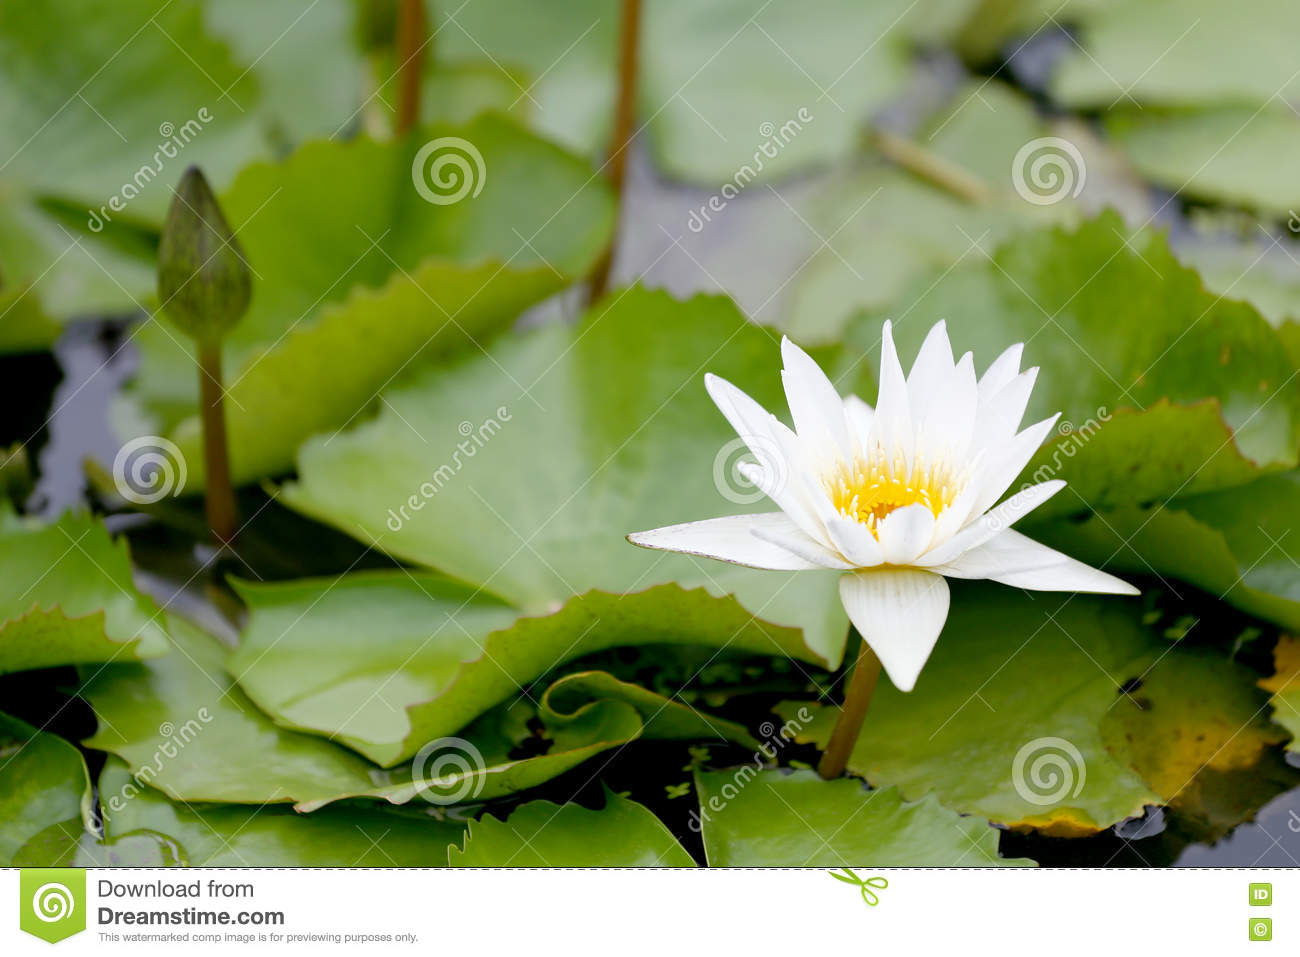 White Lotus Flower Bloom In Pondwater Lily In The Public Park